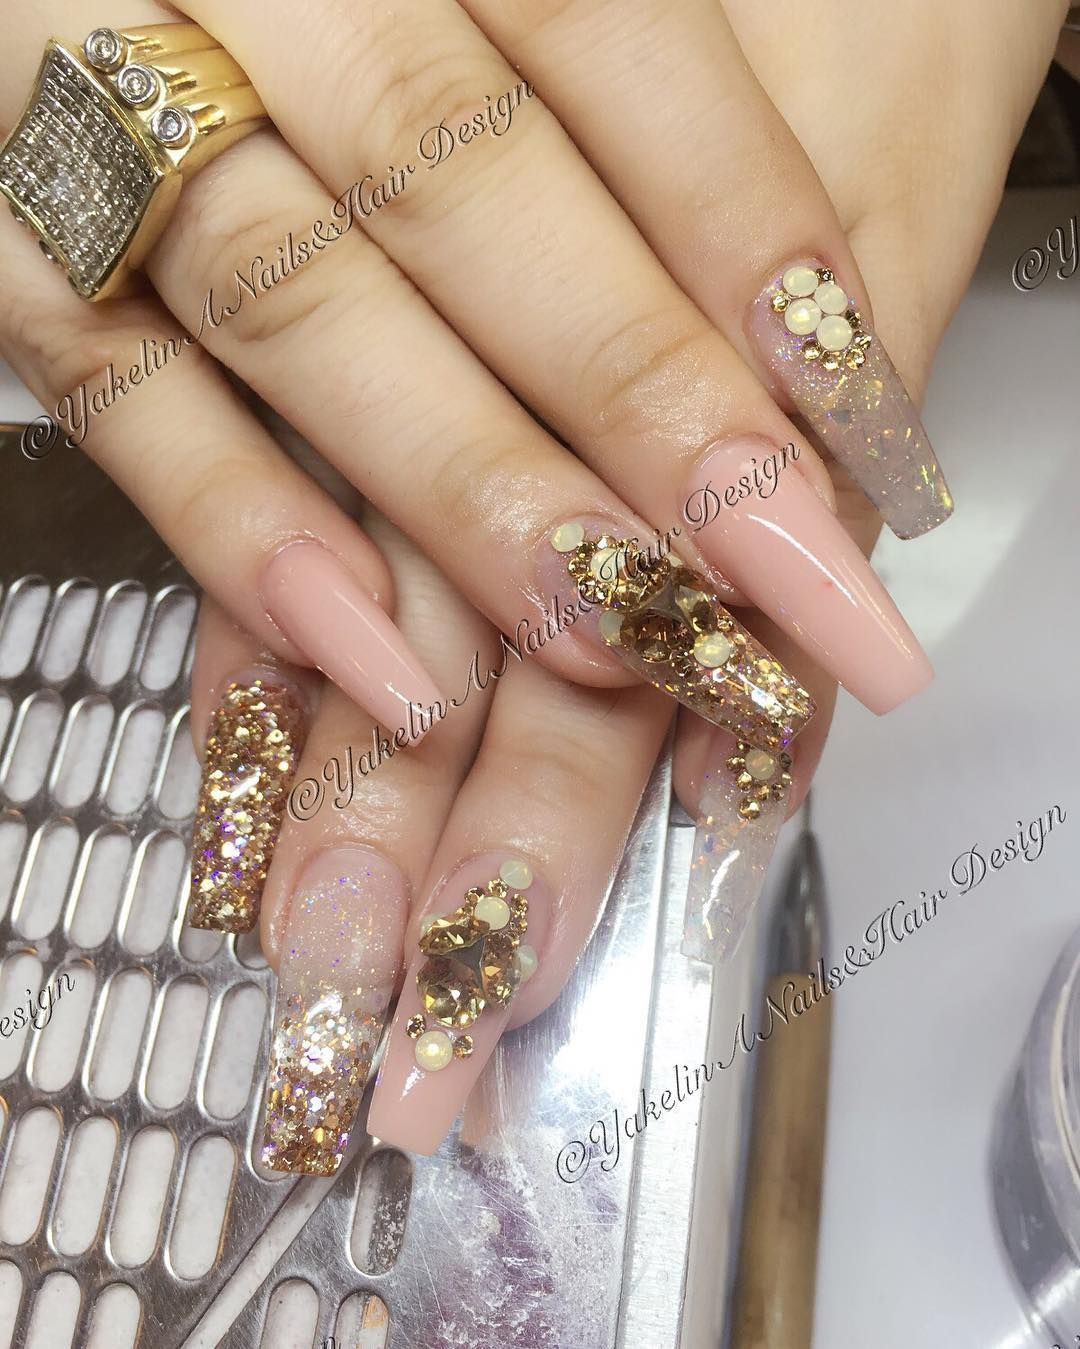 Videos Uñas Acrilicas Decoradas Yakelin Acosta Yakelinacosta Instagram Photos And Videos Nails